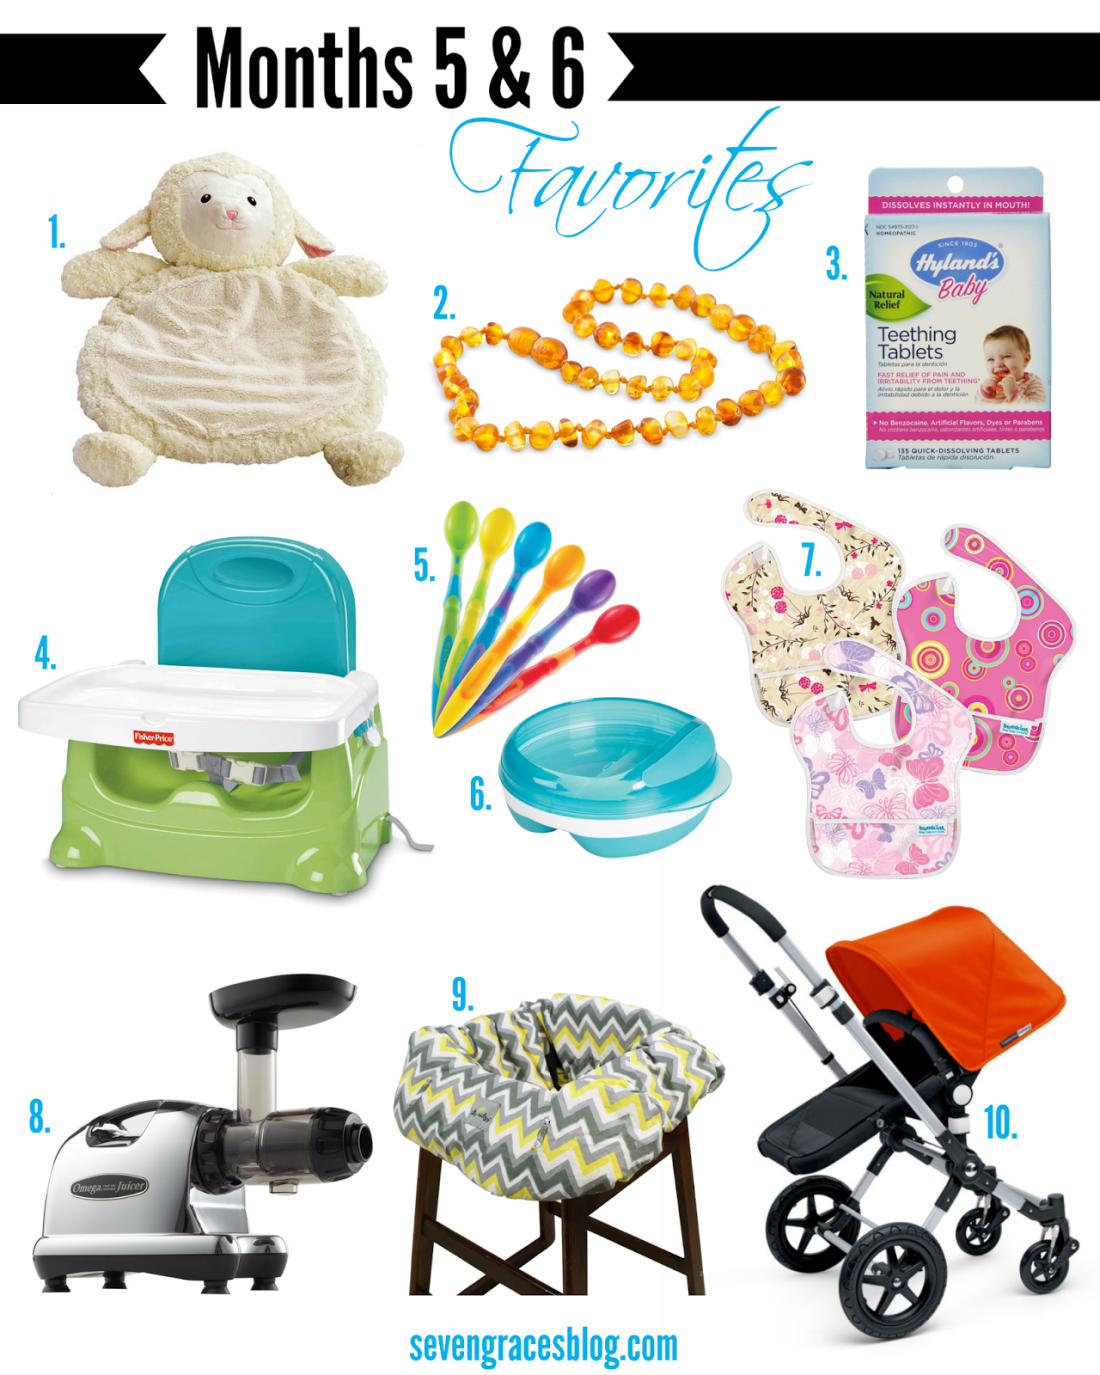 Top 10 Baby Items For Months 5 Amp 6 Teething Amp Feeding